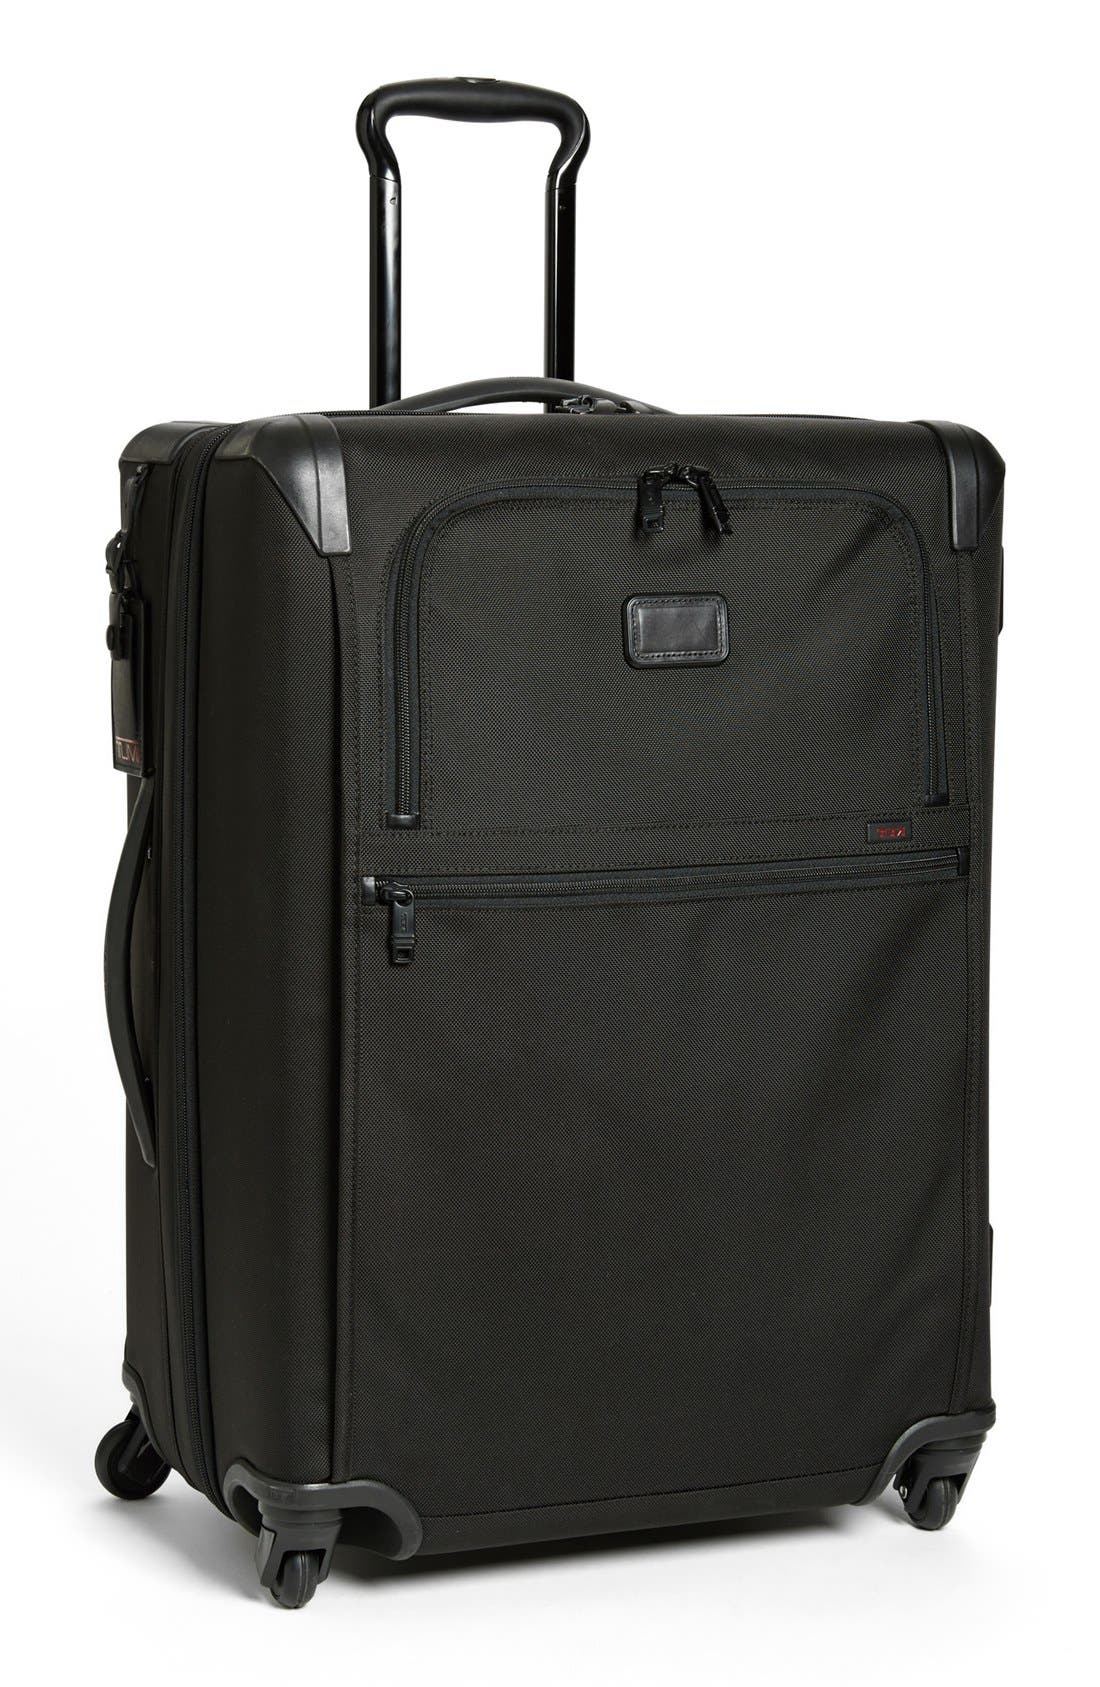 Alternate Image 1 Selected - Tumi 'Alpha 2' Short Trip Rolling Four Wheel Packing Case (26 Inch)